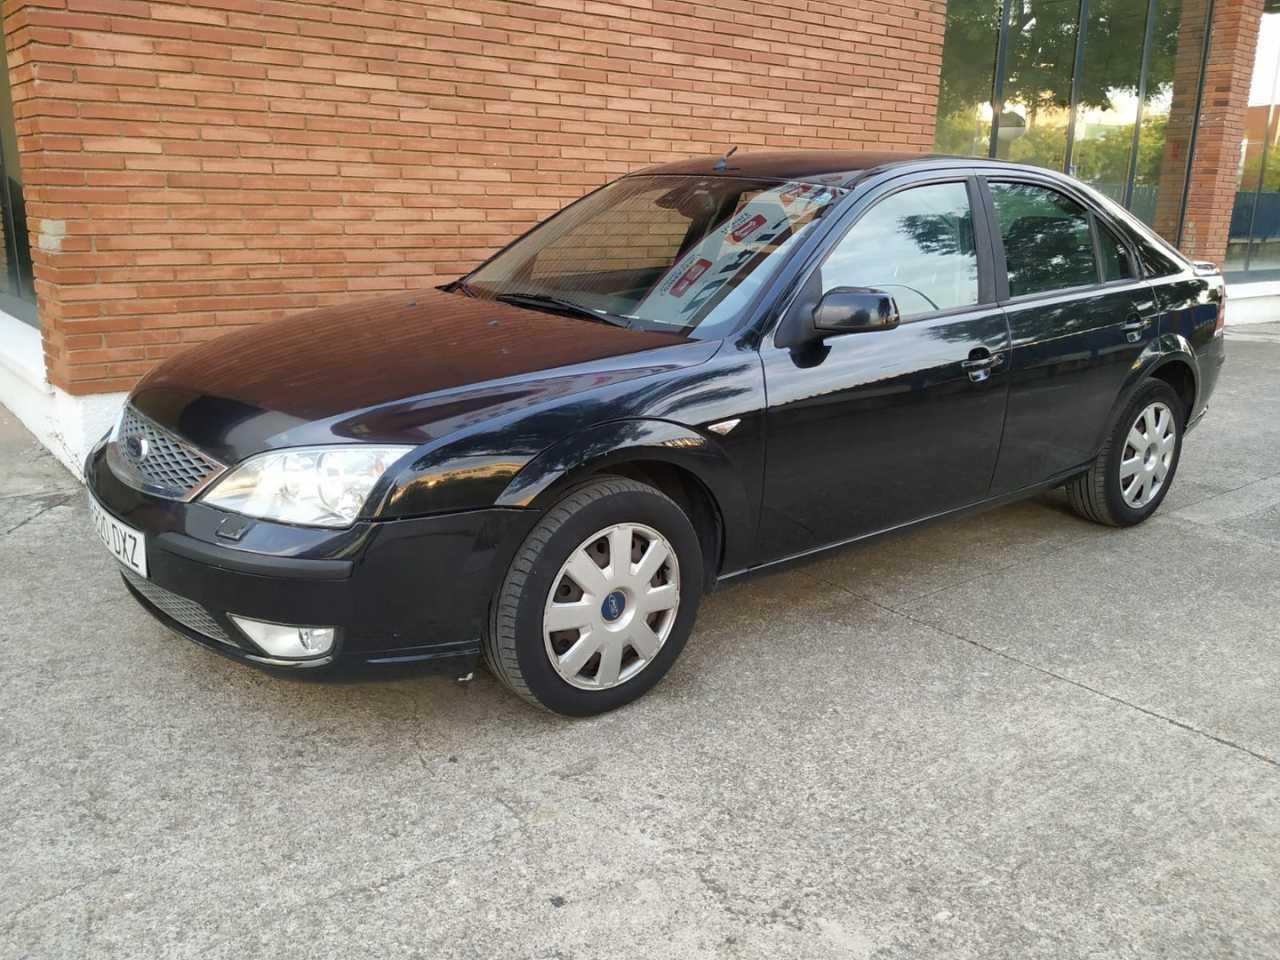 Ford Mondeo 2.0 TDCi Trend 5p.   - Foto 1